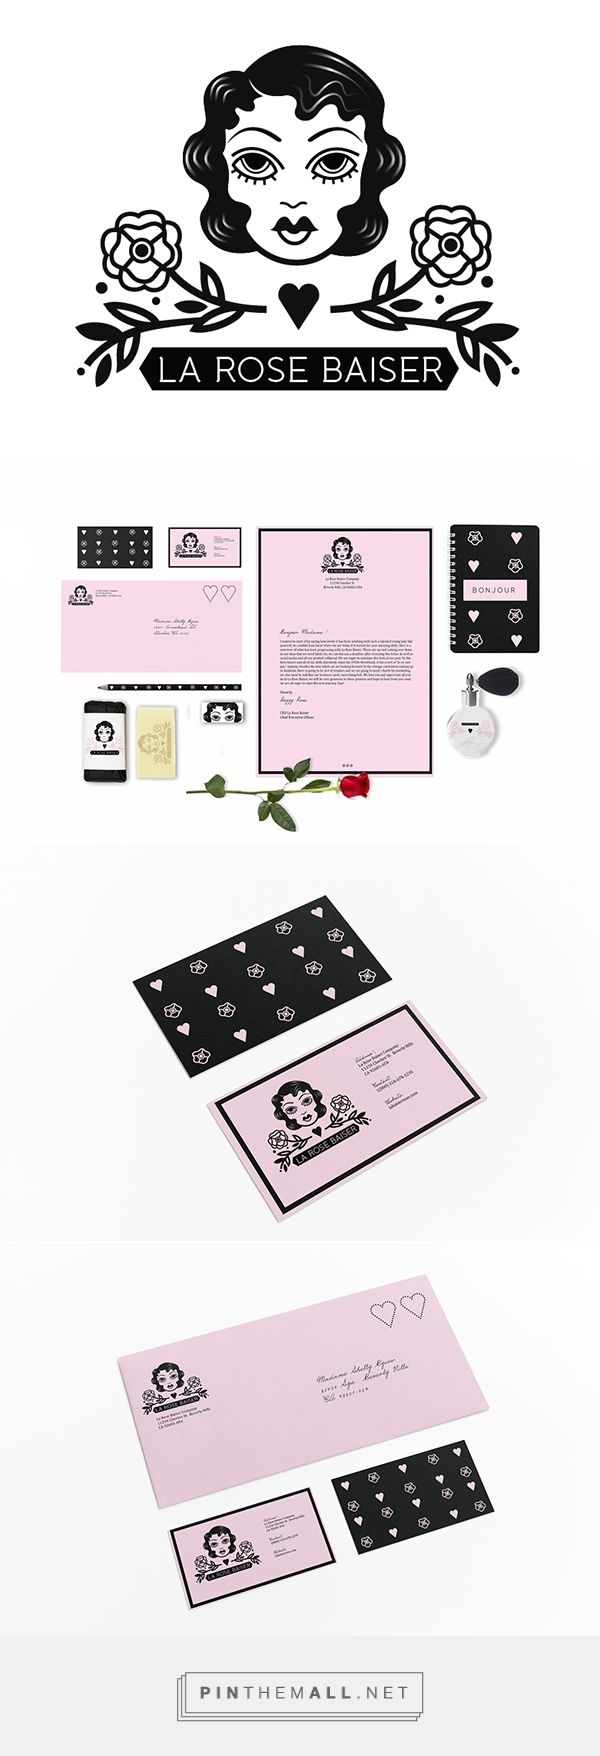 La Rose Baiser Beauty Product Branding by Sheila Vilchis | Fivestar Branding Agency – Design and Branding Agency & Curated Inspiration Gallery